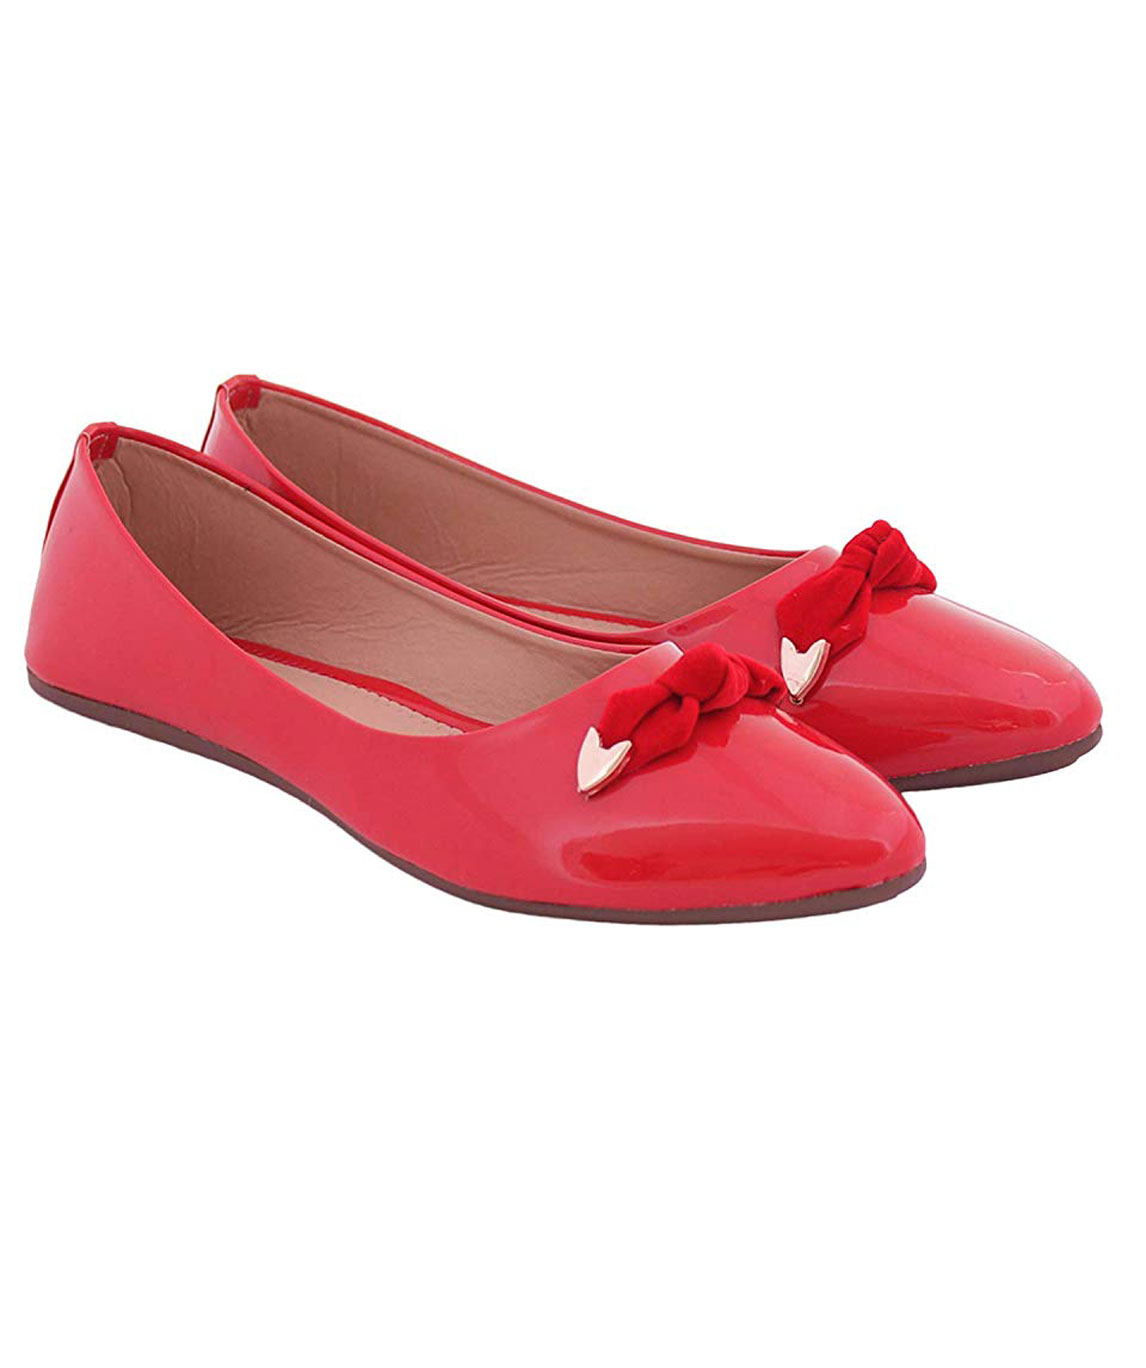 BELLIES FOR WOMEN (RED)